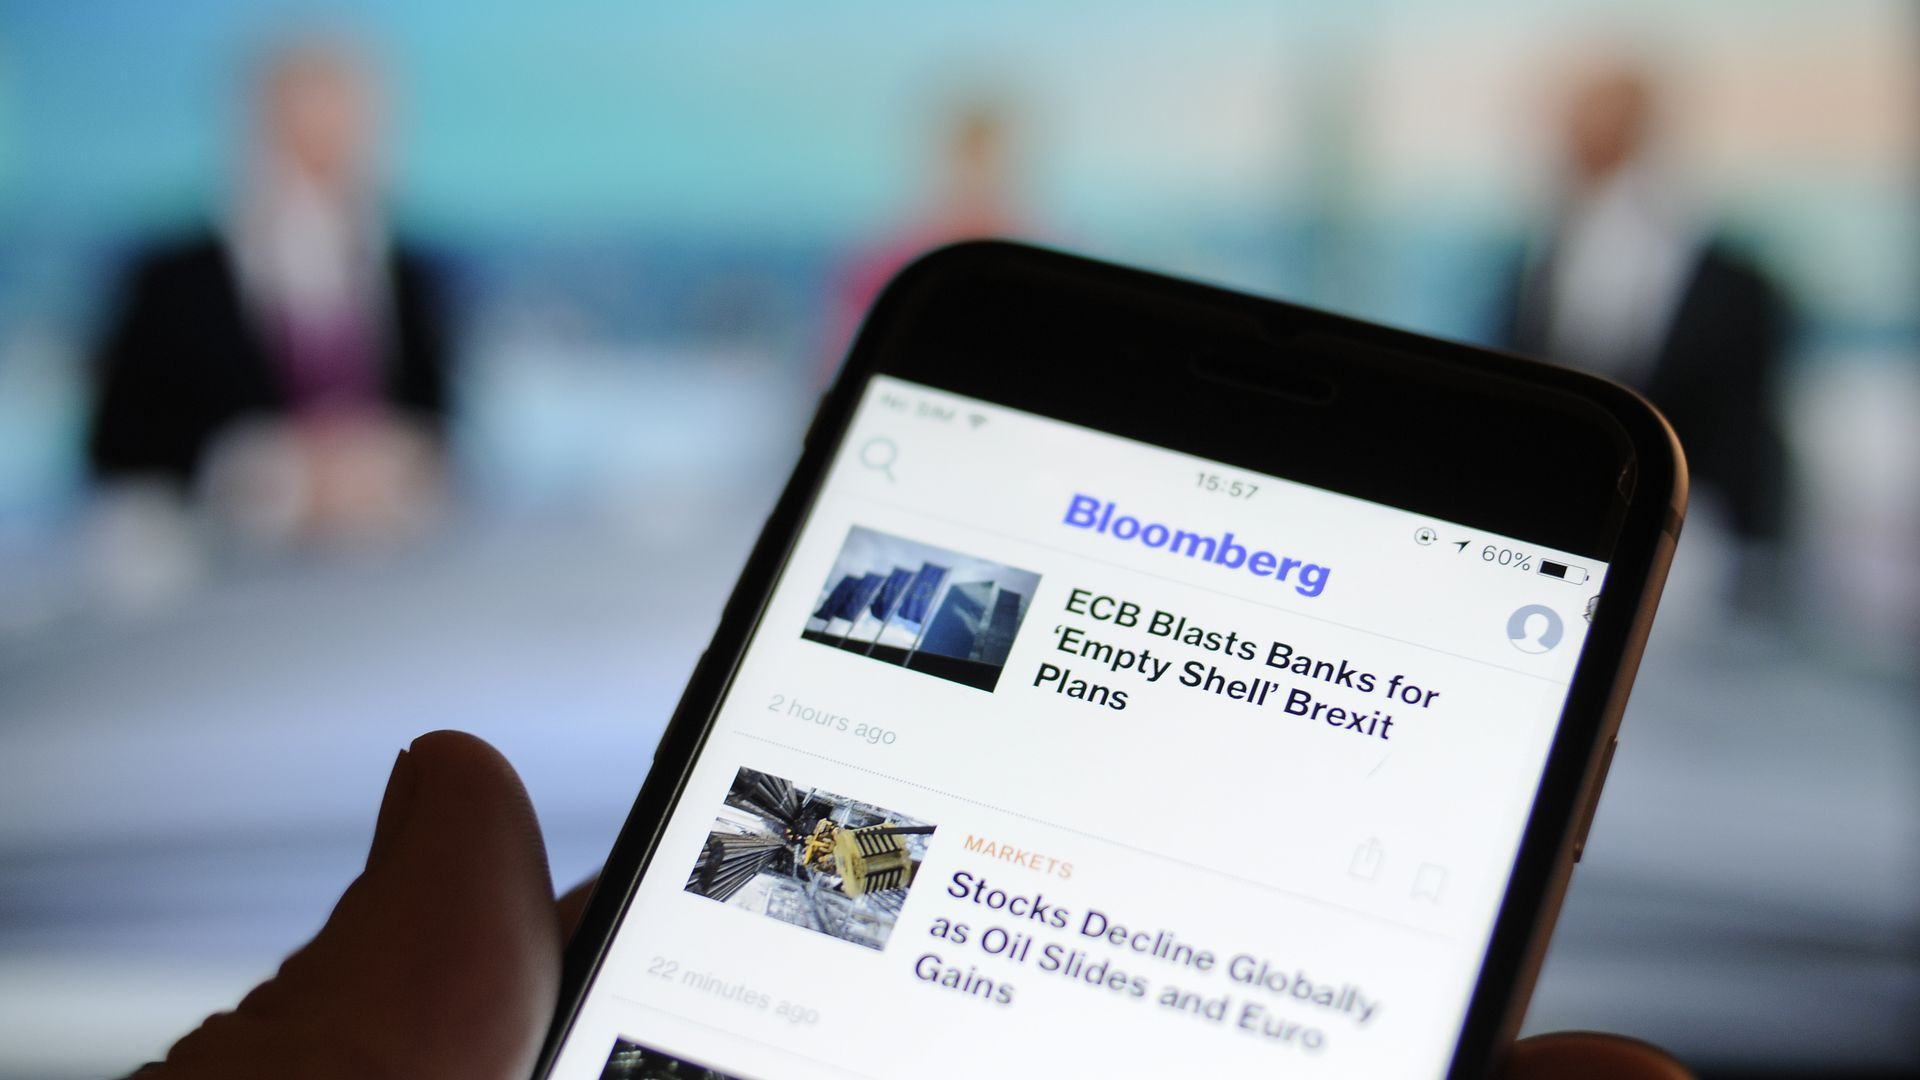 The Bloomberg news application seen on a smartphone.